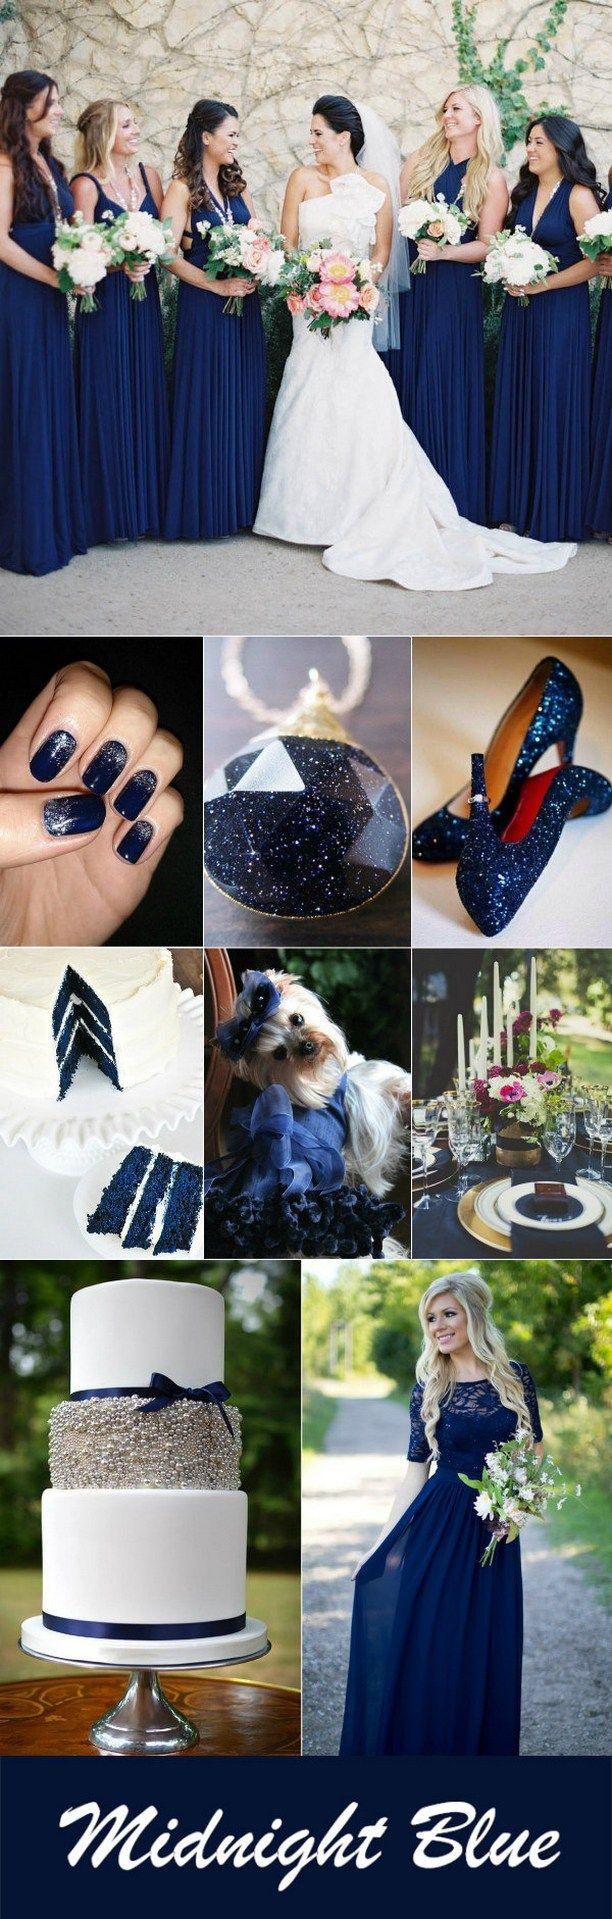 best of wedding color combination ideas wedding and